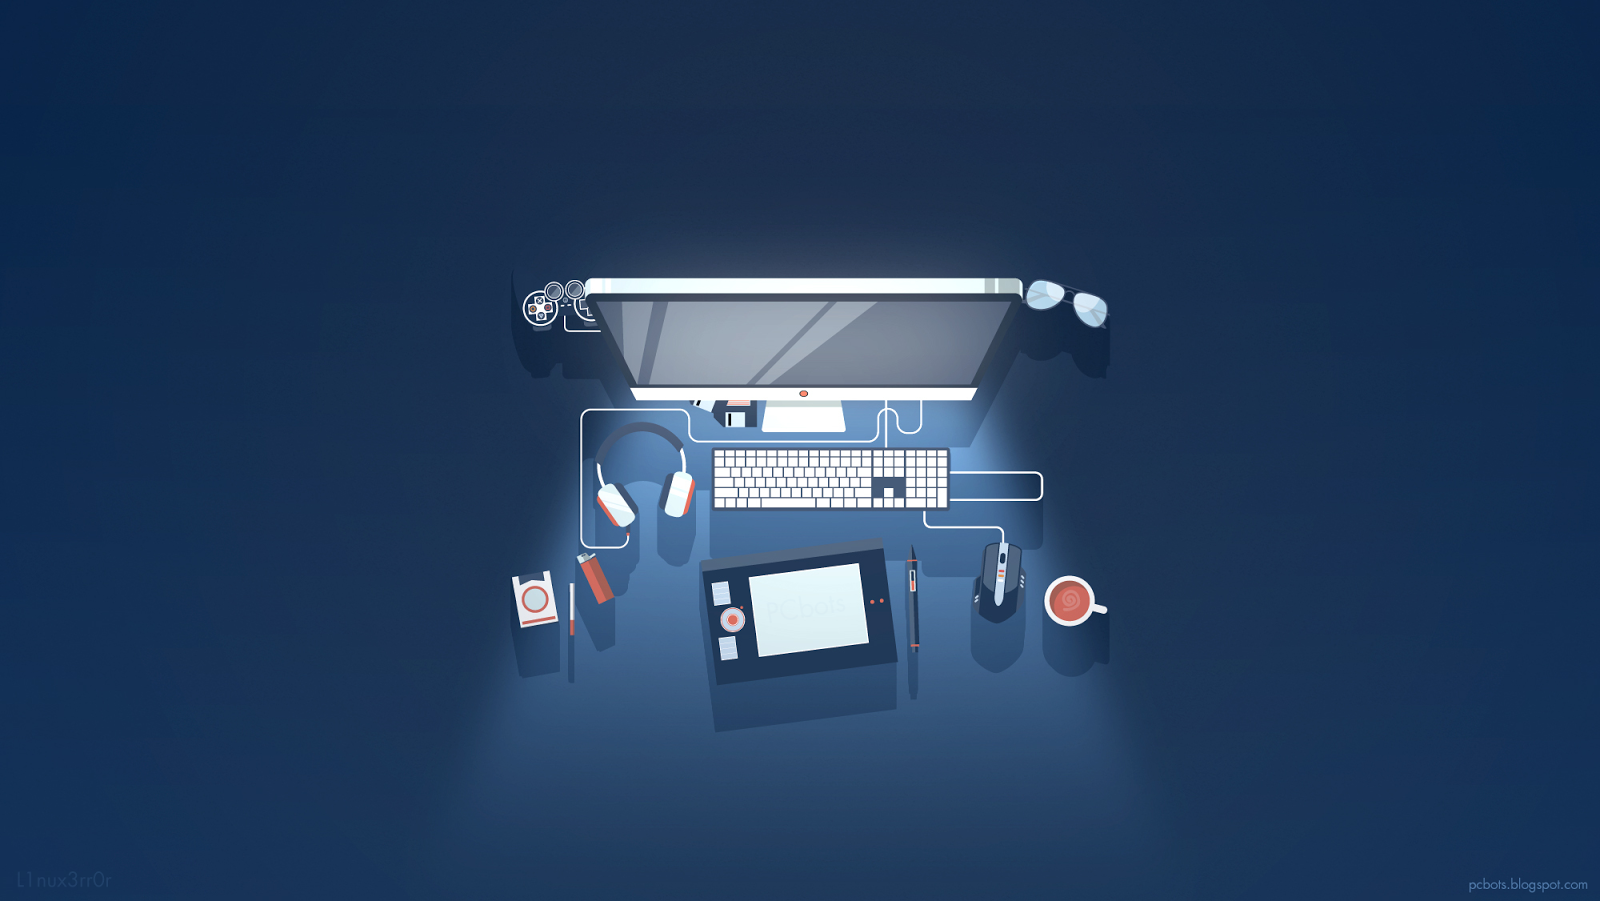 Programmer Wallpaper by Lavona Kreitzer, BsnSCB Gallery | Computers Full HD